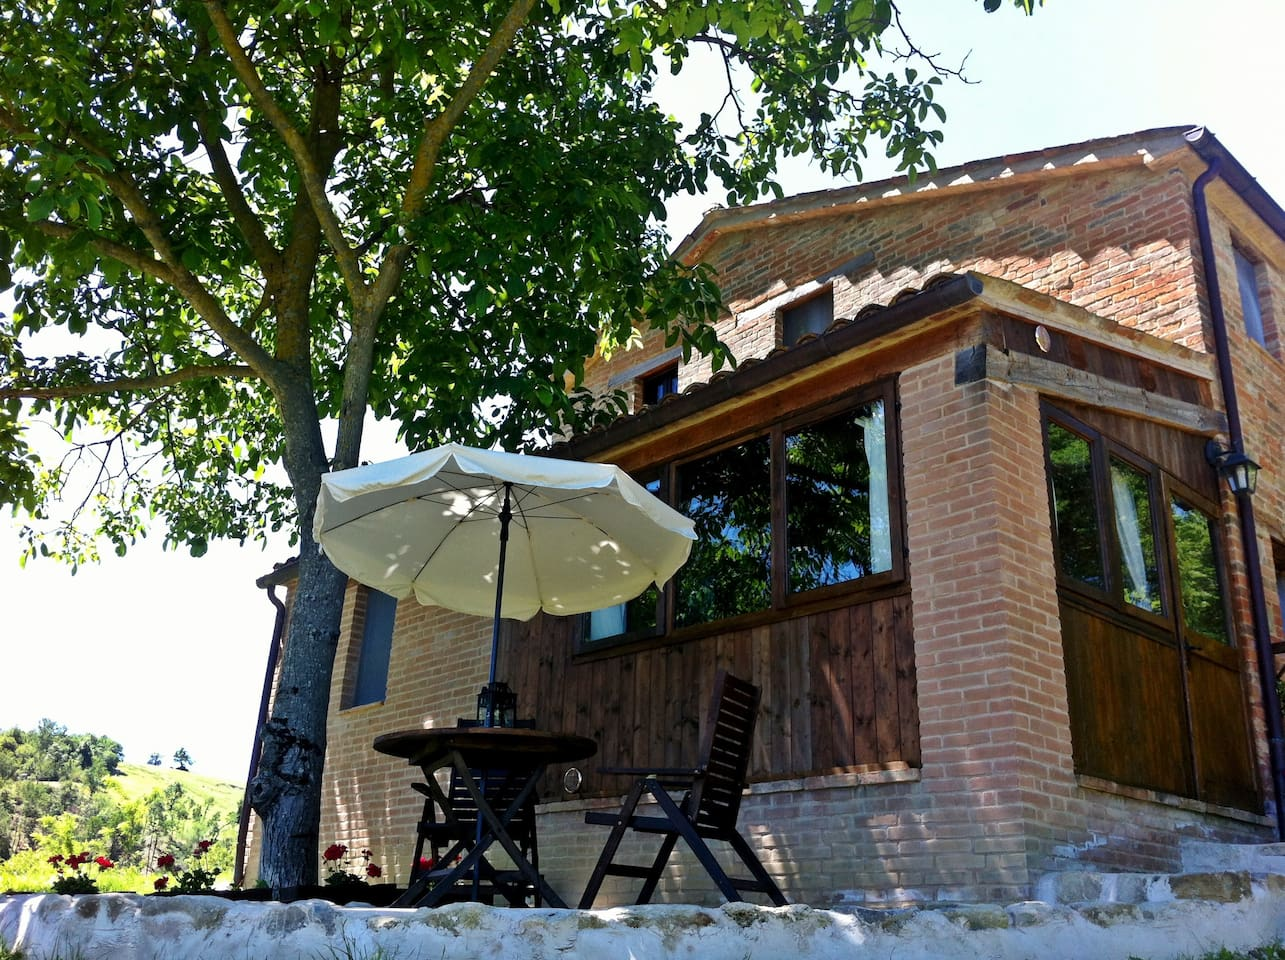 The Stables Apartment and Terrace under the shade of the Walnut Tree